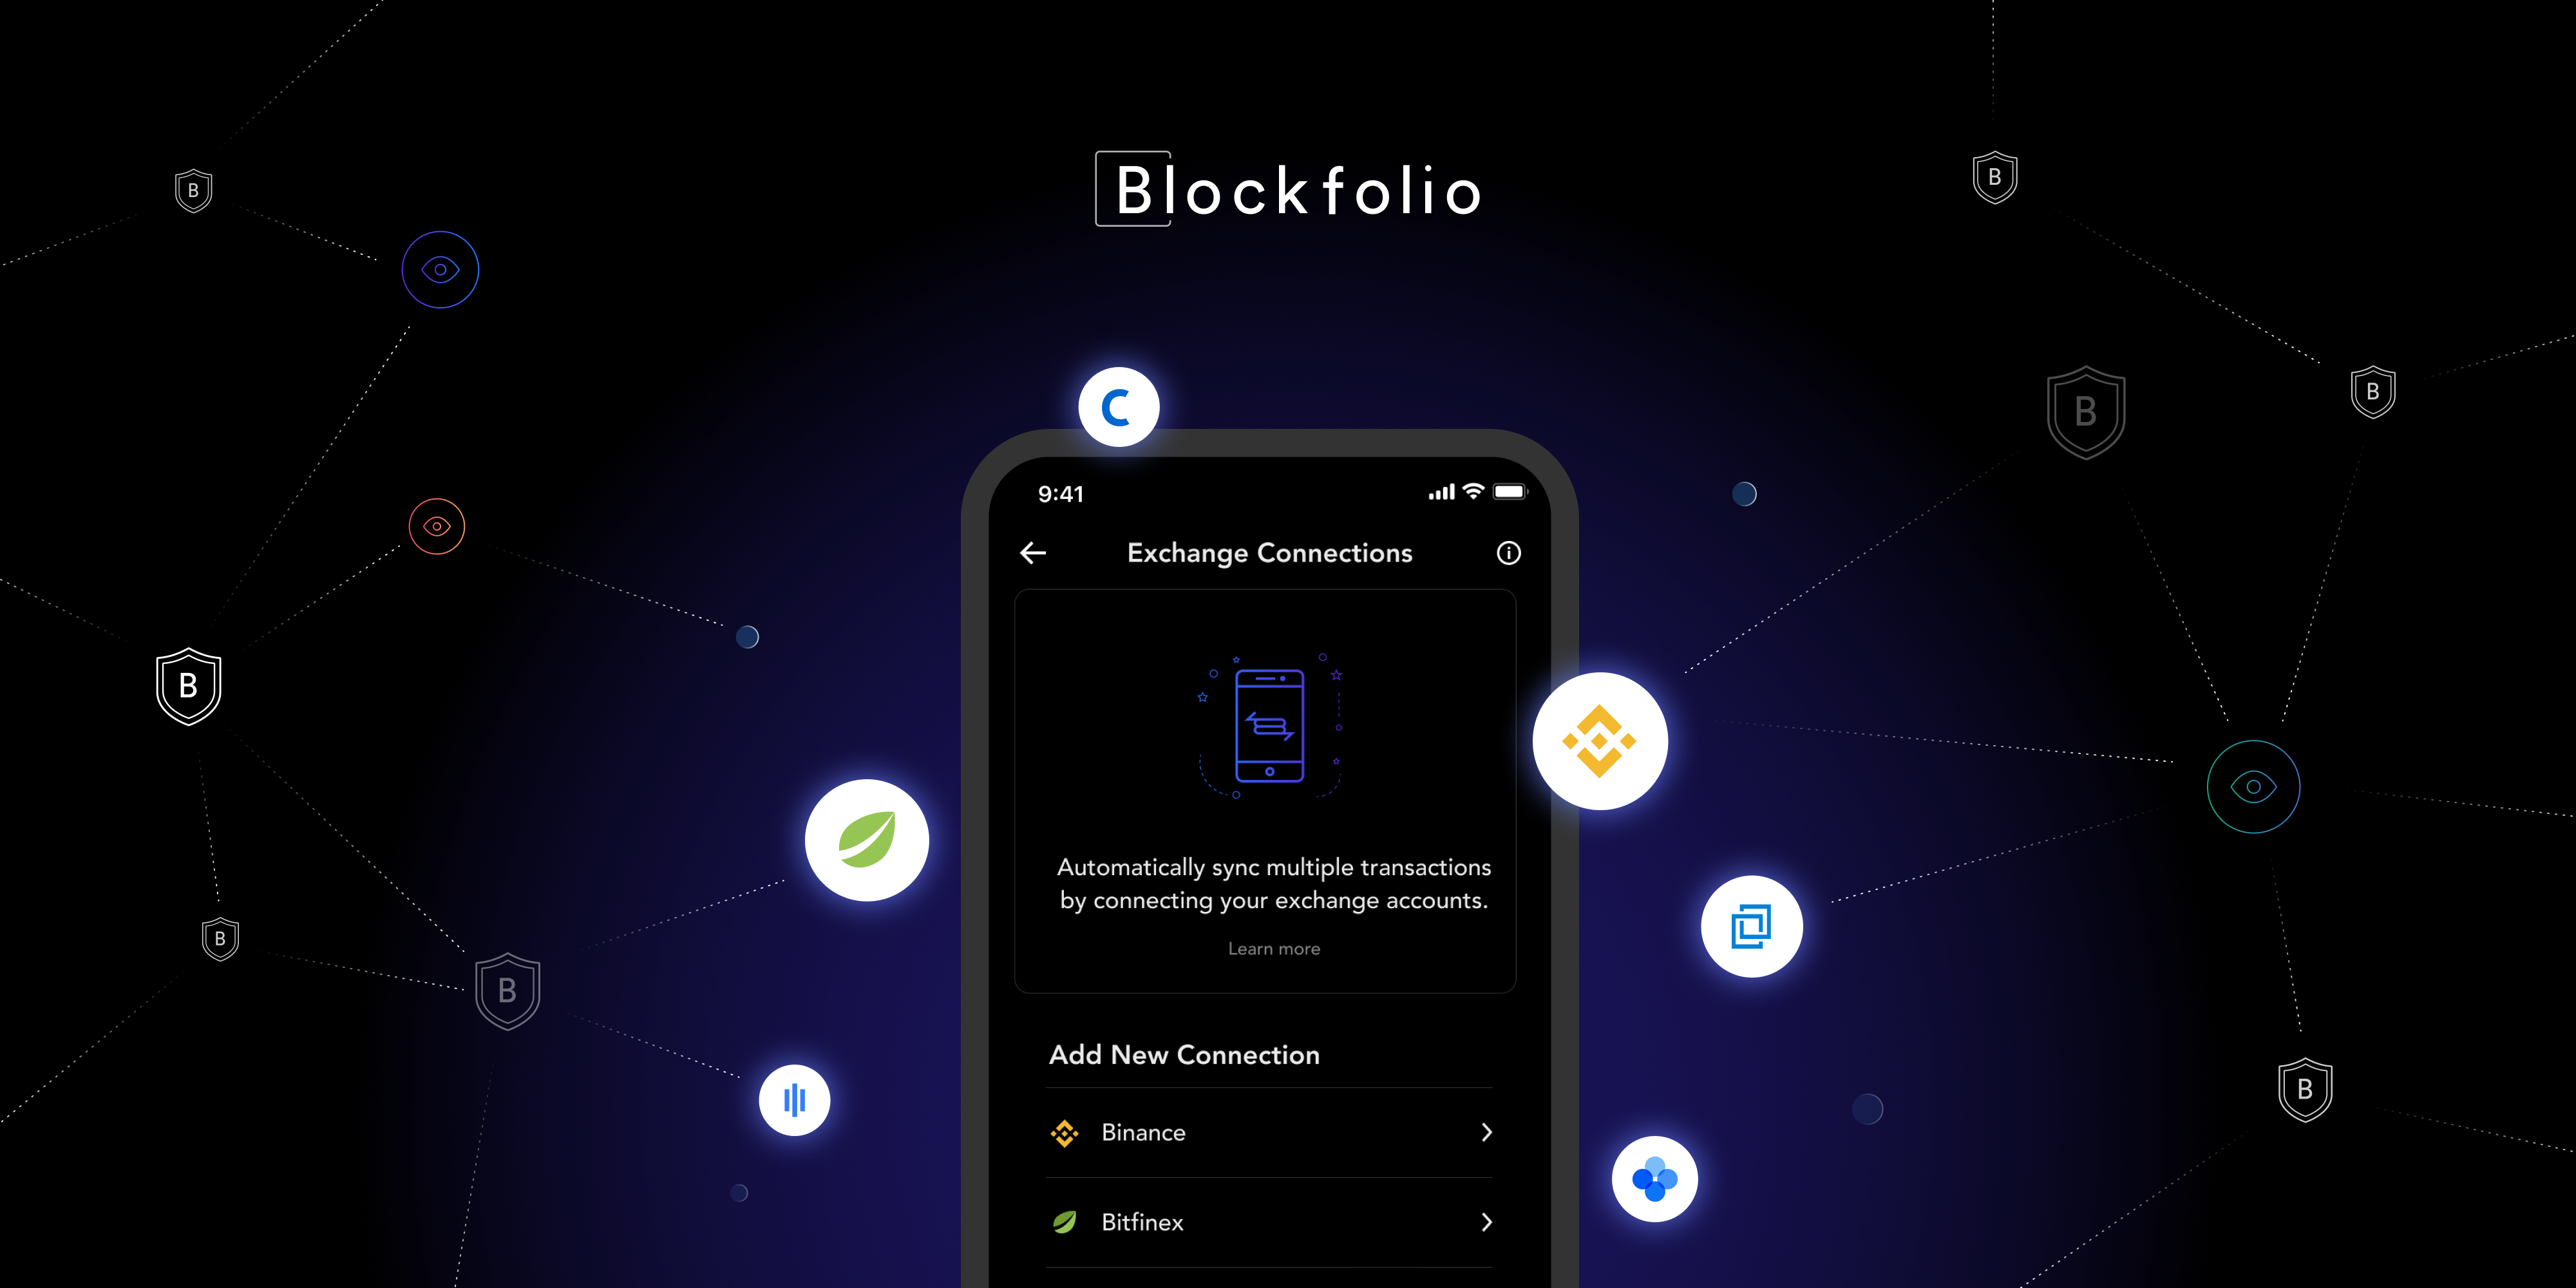 Blockfolio 2 2 Launches Free Exchange Connections with